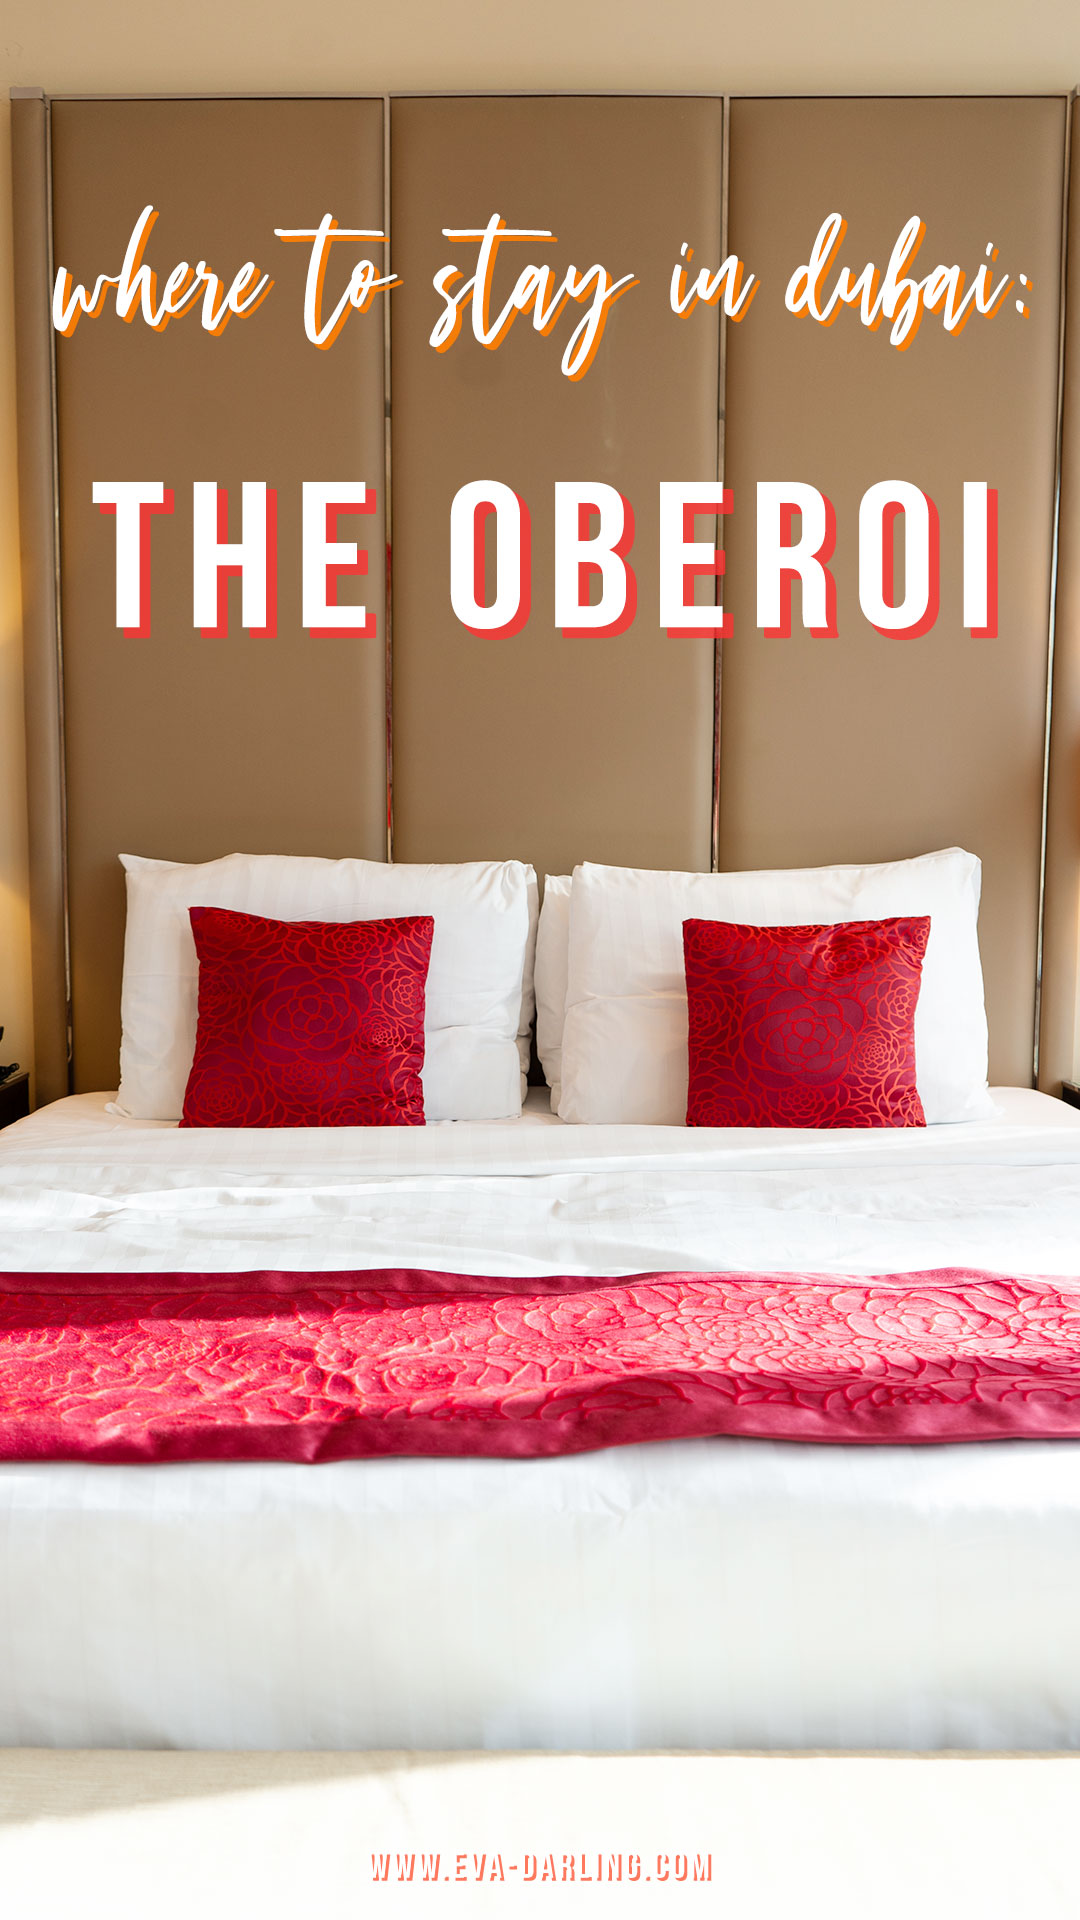 where to stay in dubai the oberoi luxury hotel business bay uae united arab emirates king bed red throw pillows